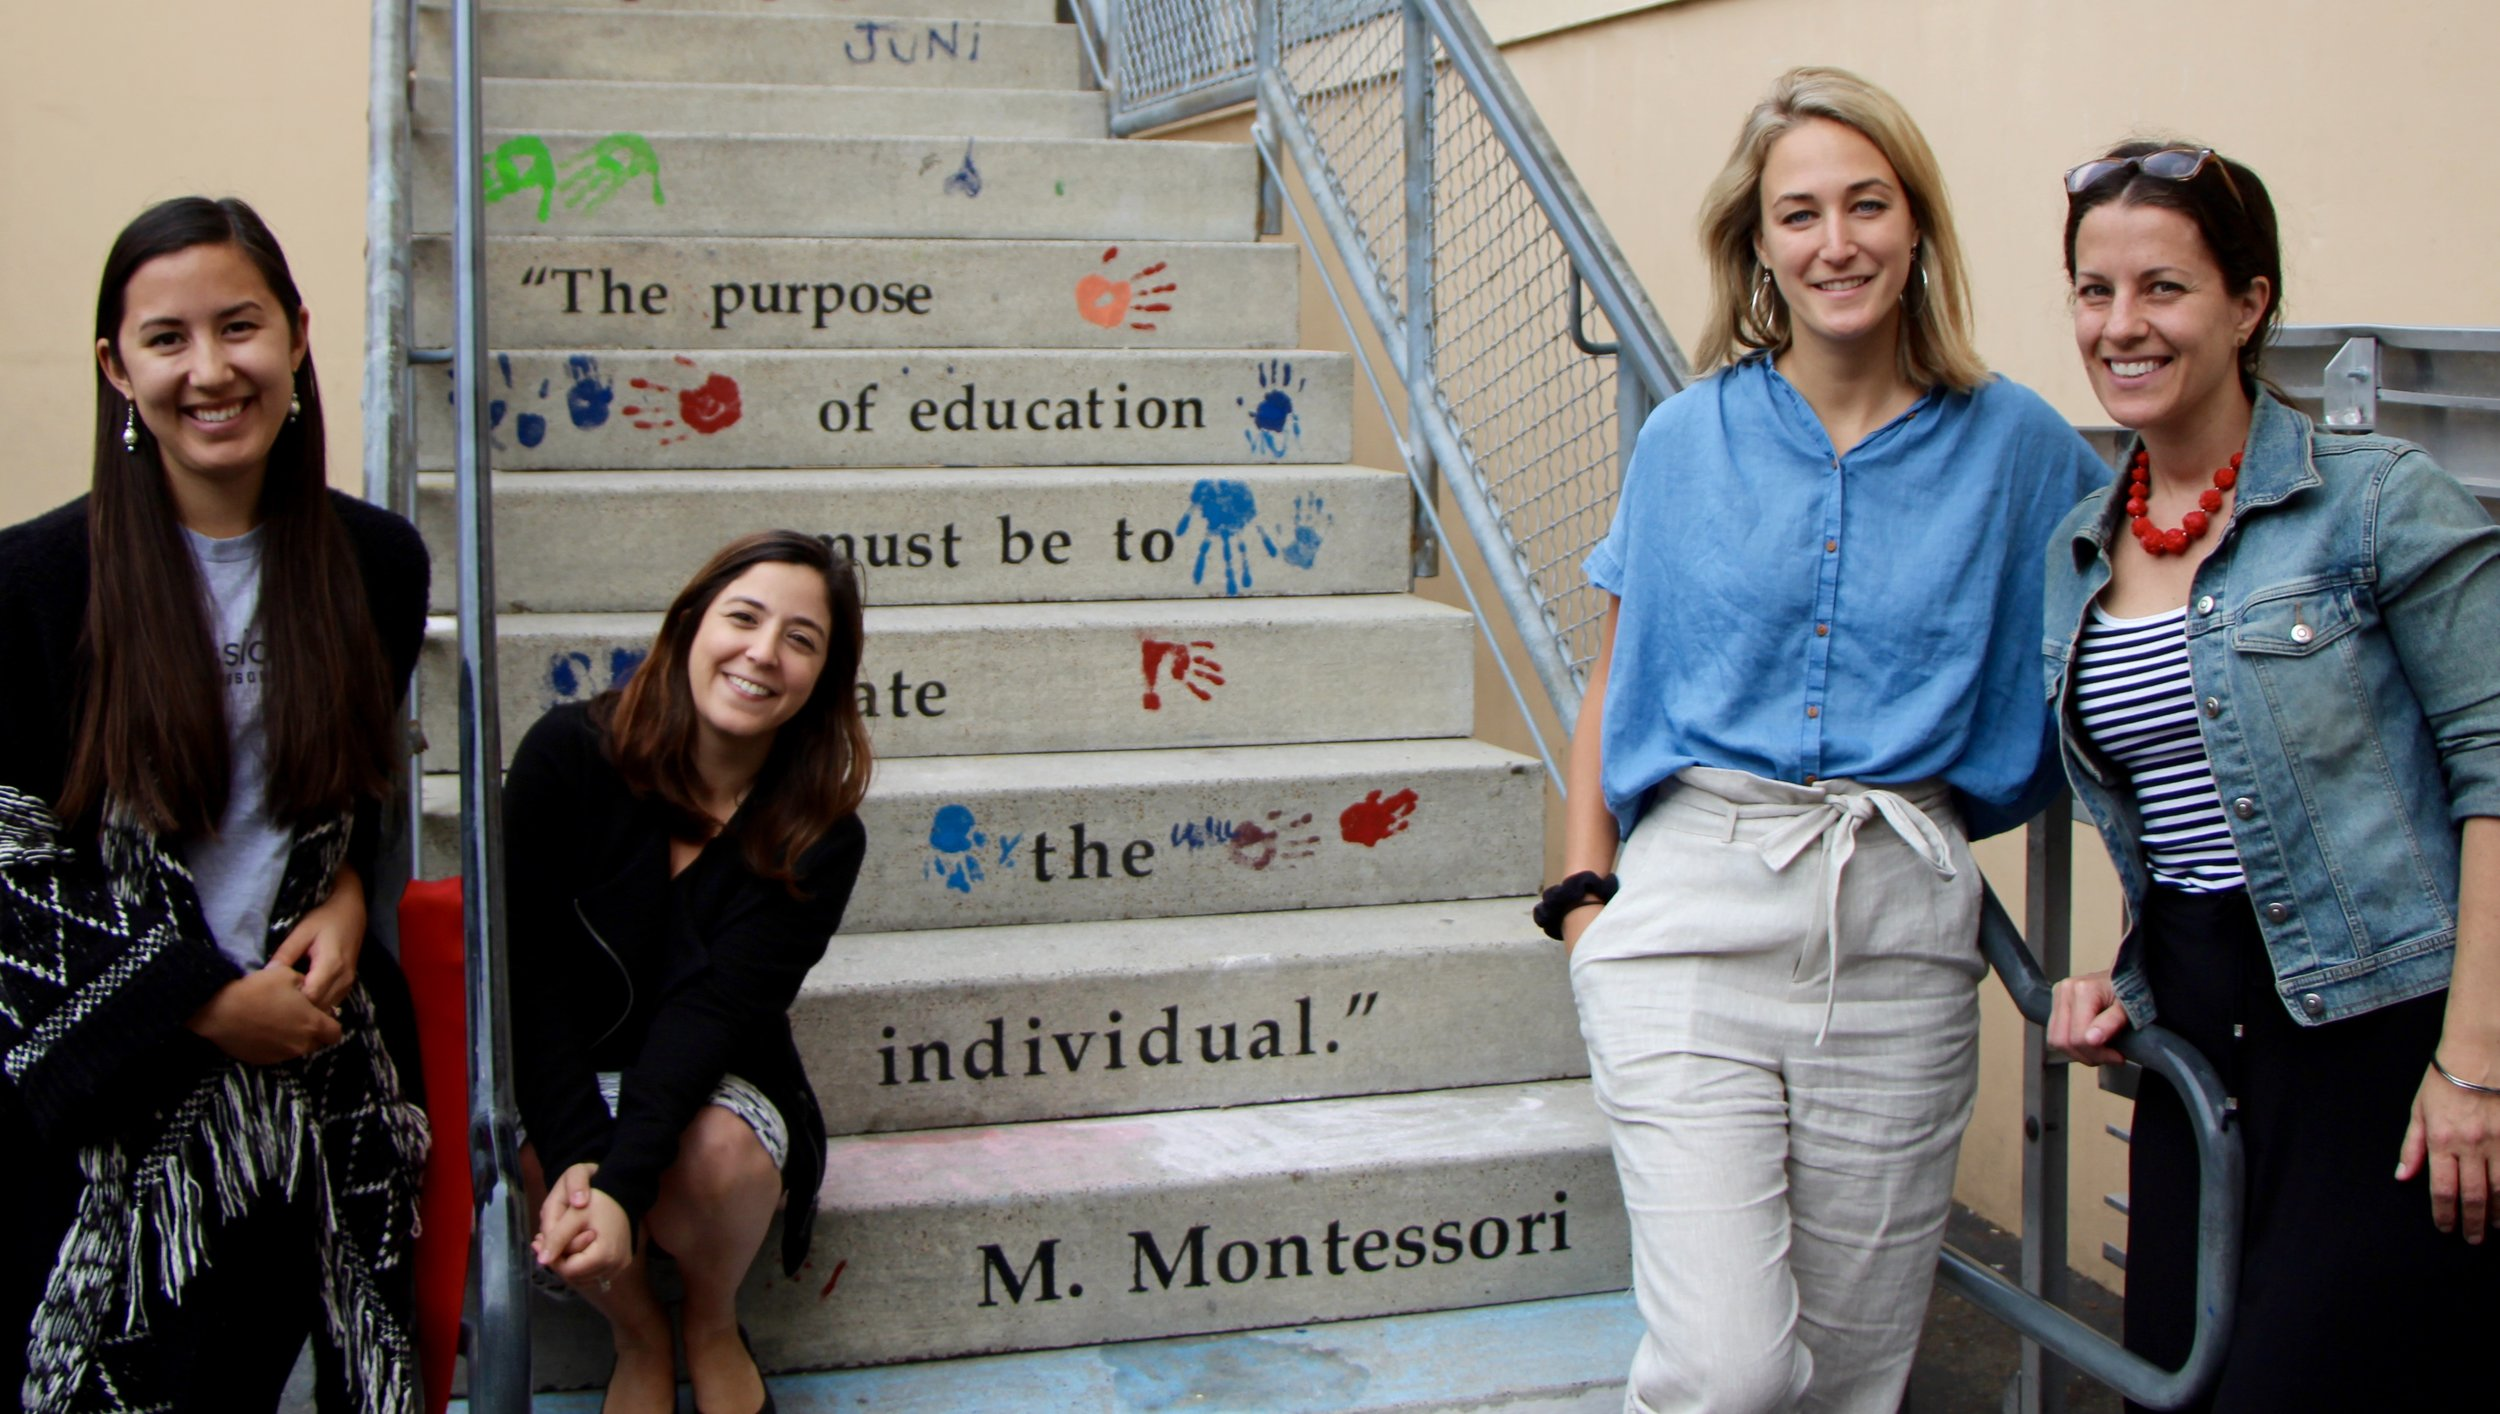 Schedule A Tour of Mission Montessori - Learn more about Montessori and its benefits for your childTake a walking tour of our campusMeet our teachers and staffObserve a classroom in action